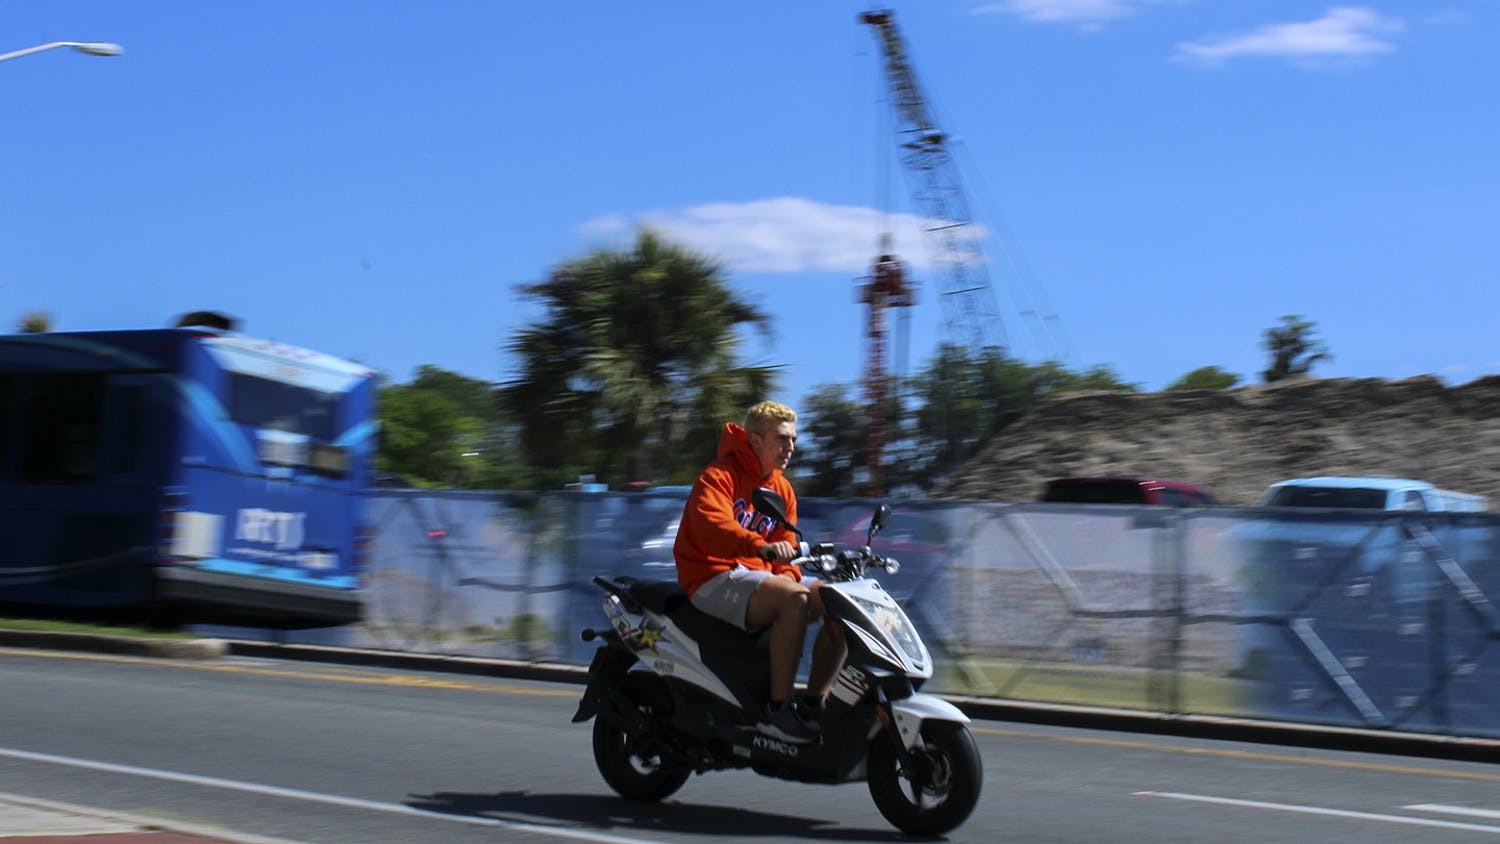 A person wearing a UF sweatshirt rides past a construction site on Museum Road across from the Reitz Union on Friday, March 19, 2021. (Photo by Chasity Maynard)